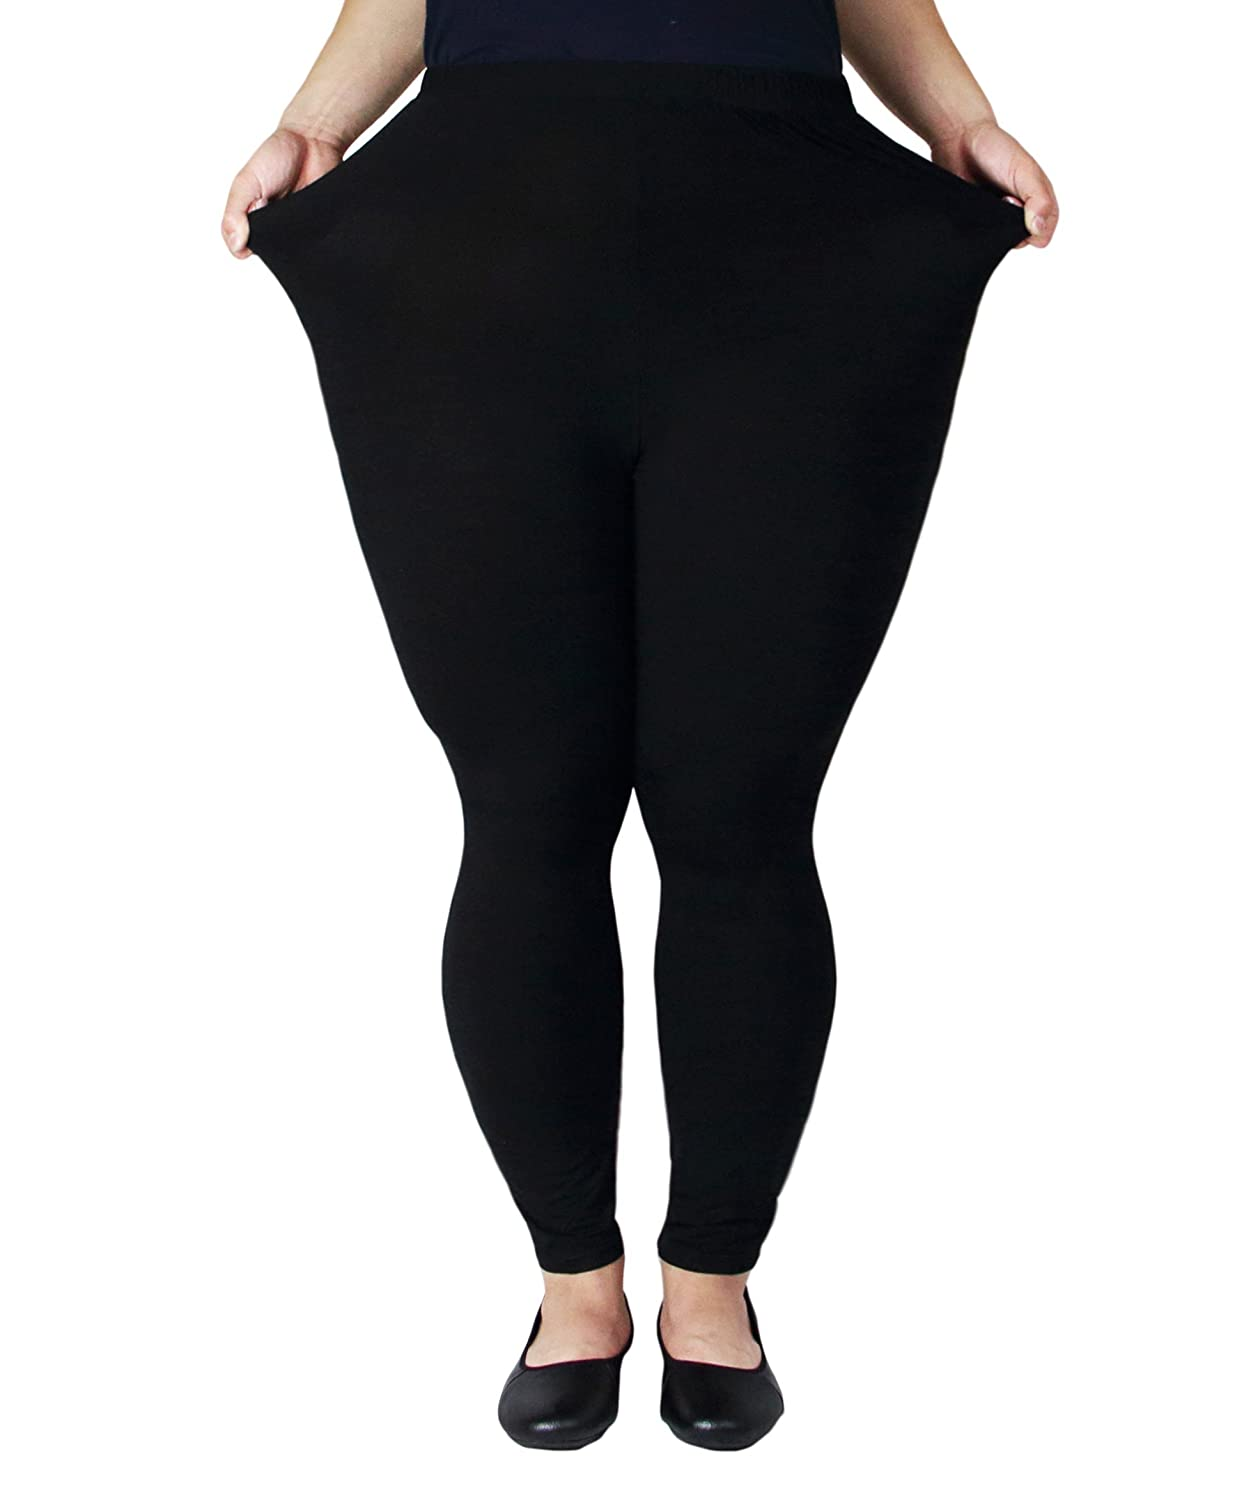 0273fc8239e35 Images of Leggings Plus Size - All about Fashions